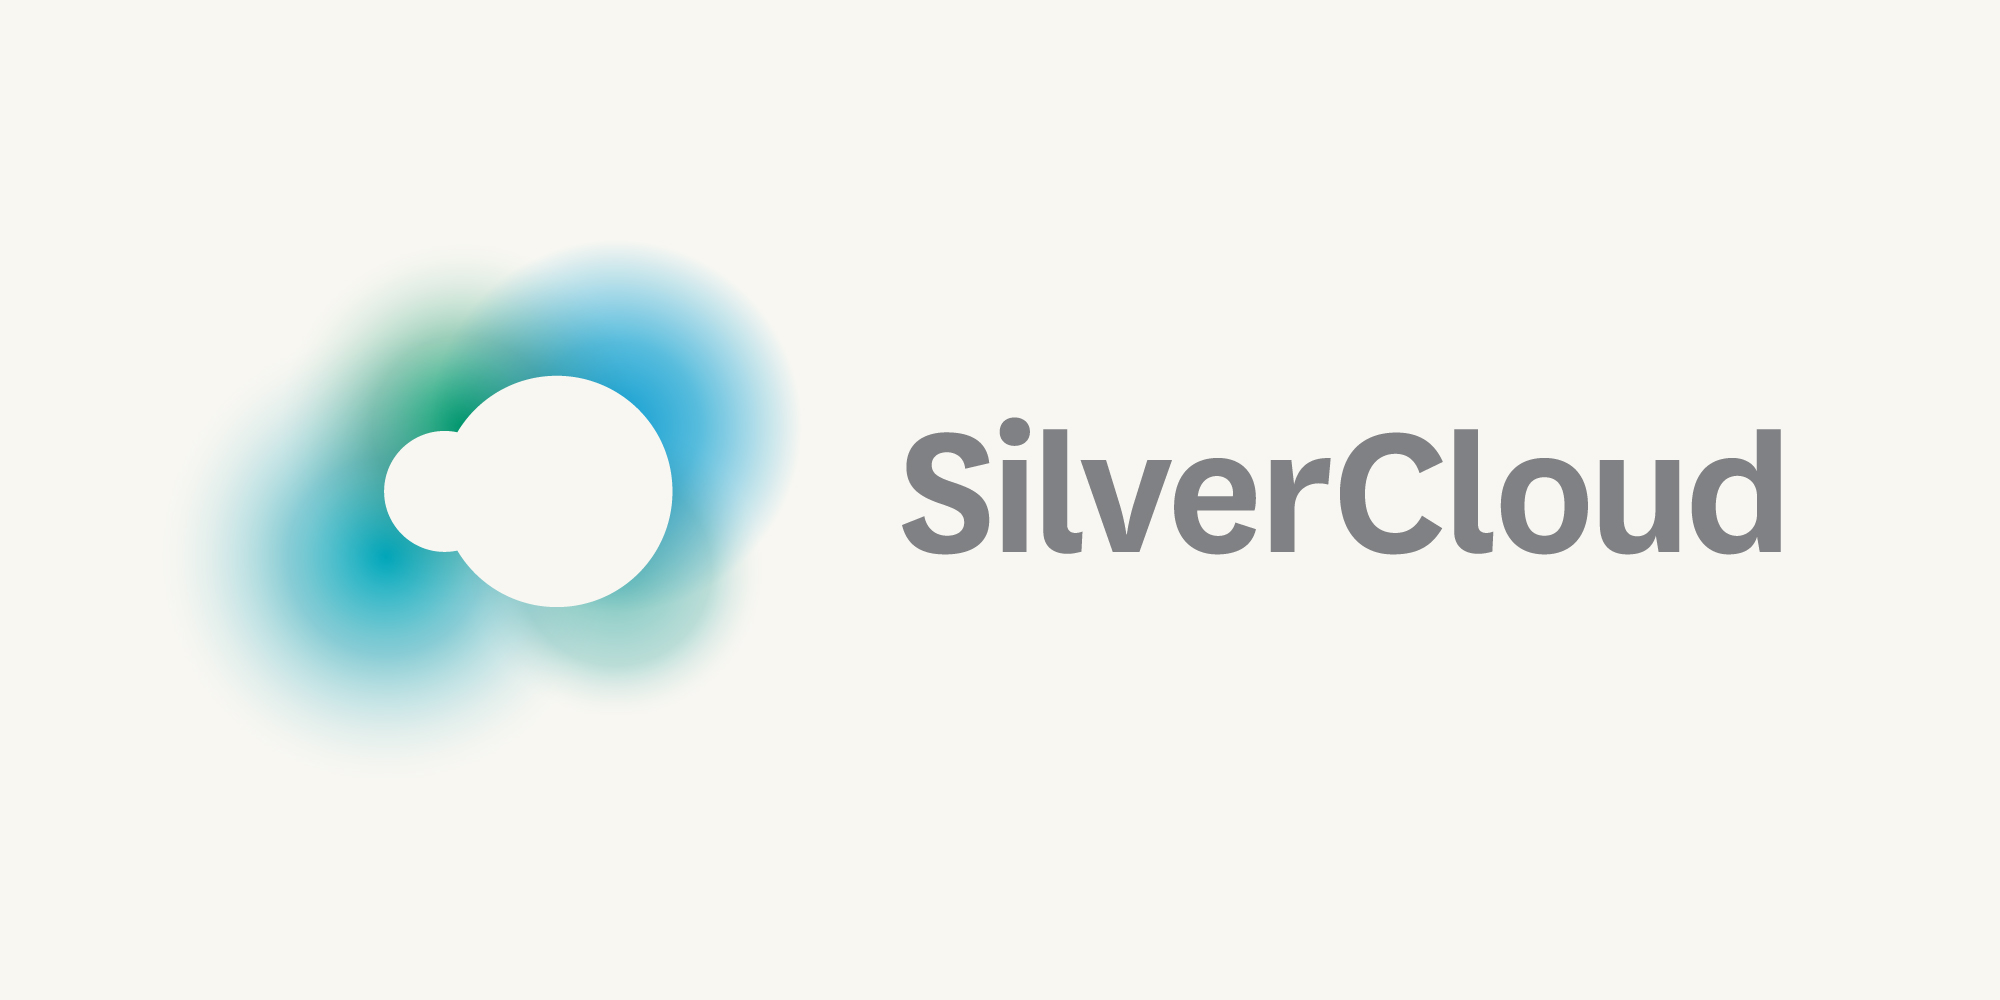 Cover image: Silvercloud